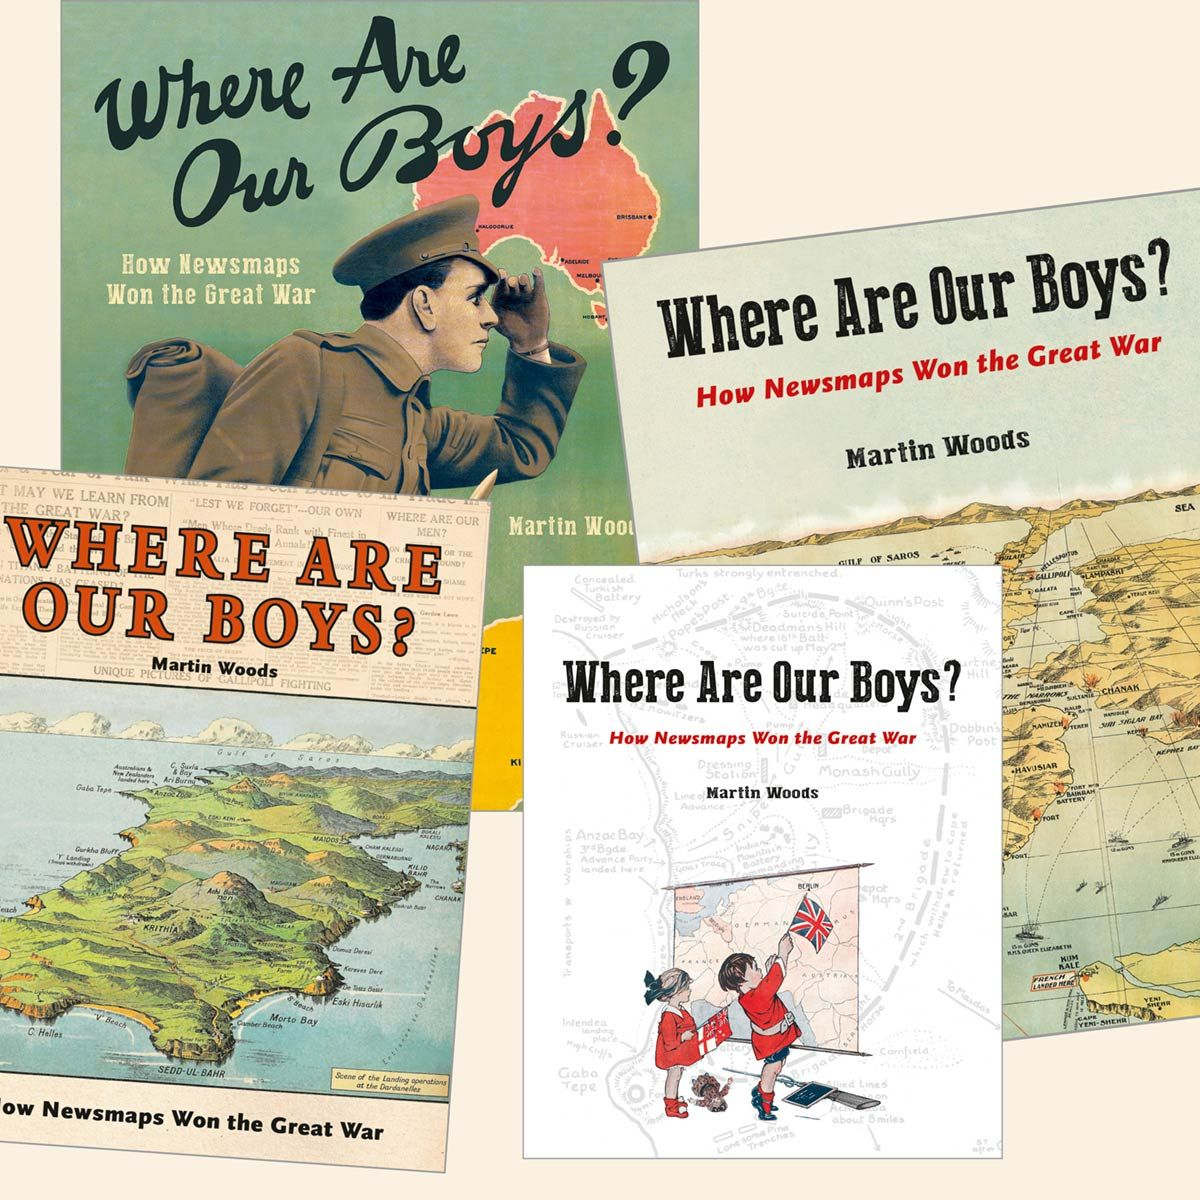 Alternative cover designs for Where Are Our Boys?